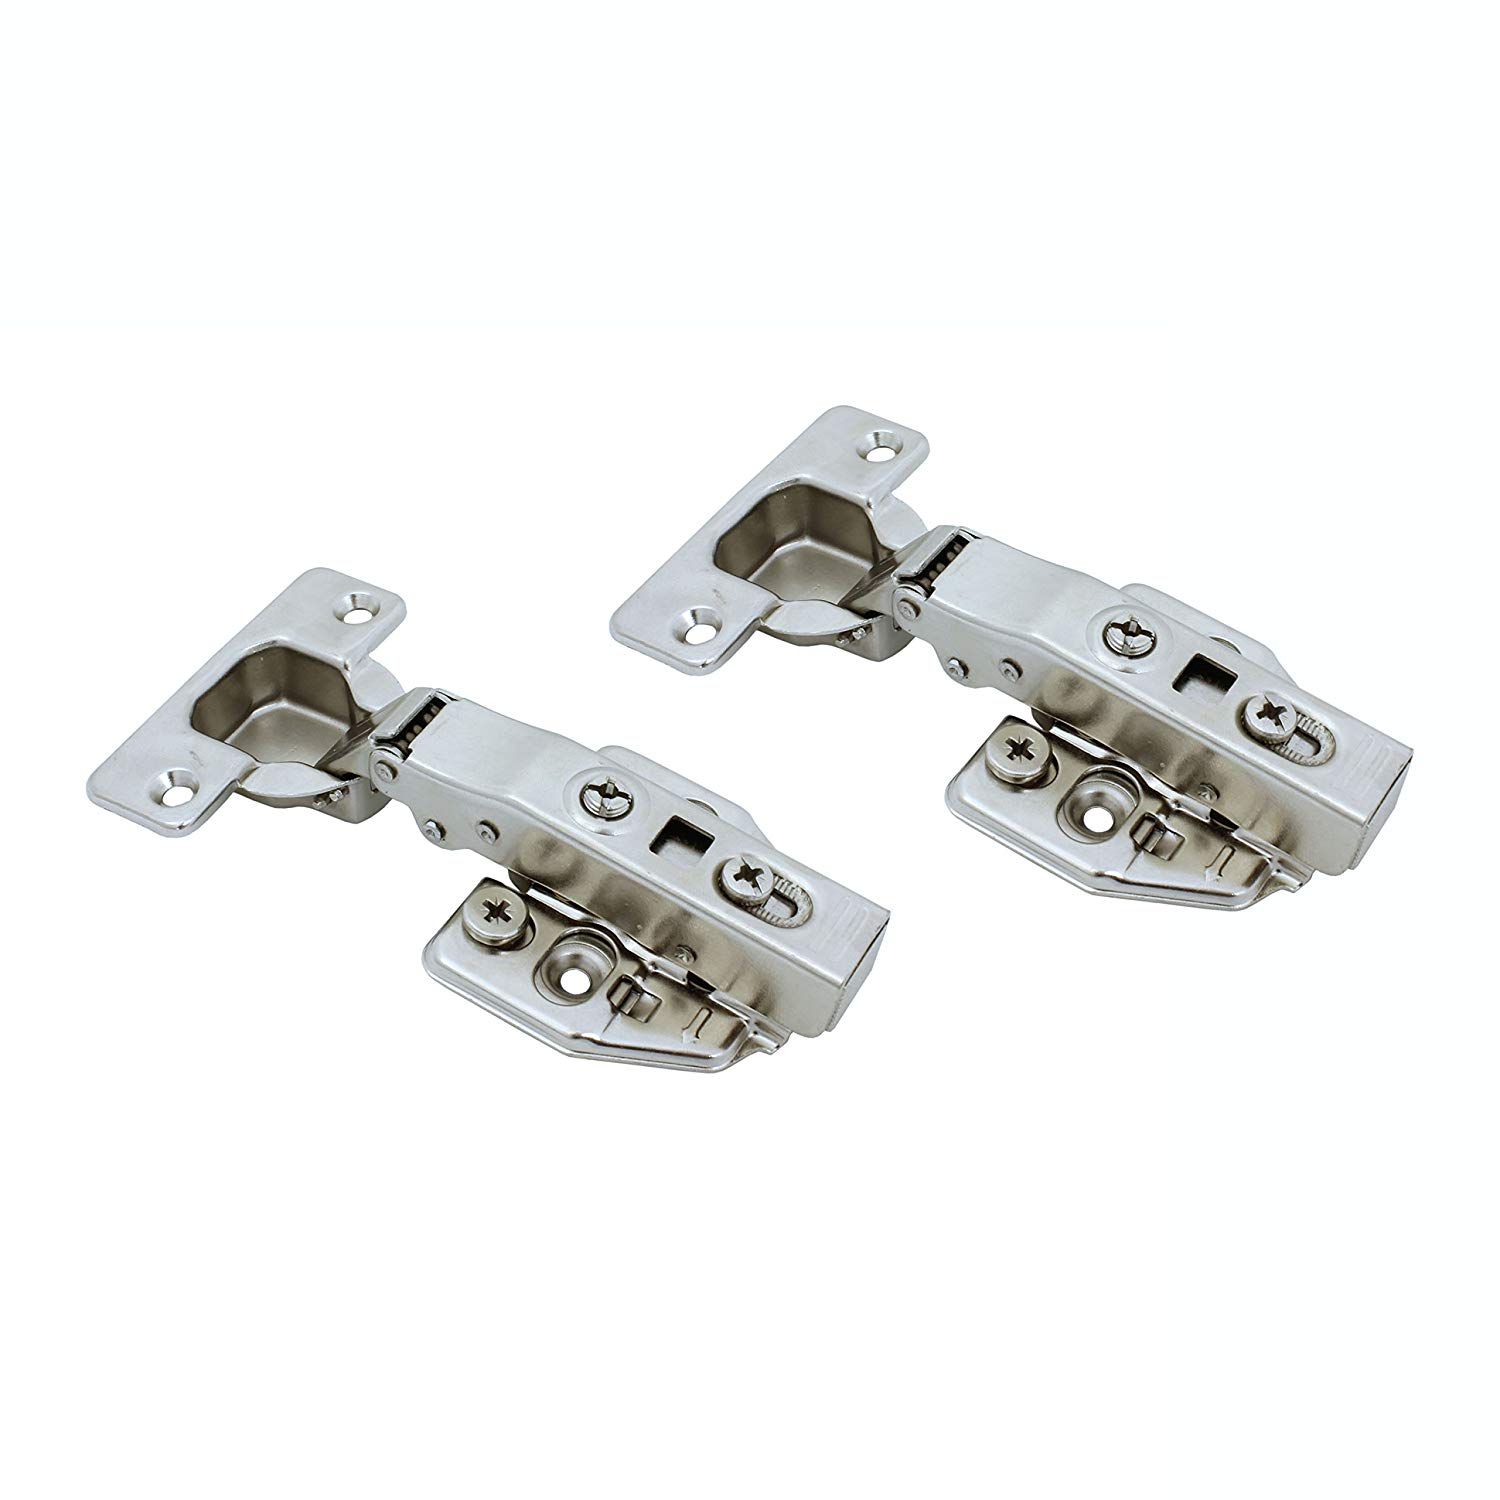 41.82230mm 1pcs Invisible Concealed Cross Door Hinge Zinc Alloy Hidden Hinges for Folding Door Furniture Hardware Color: SV